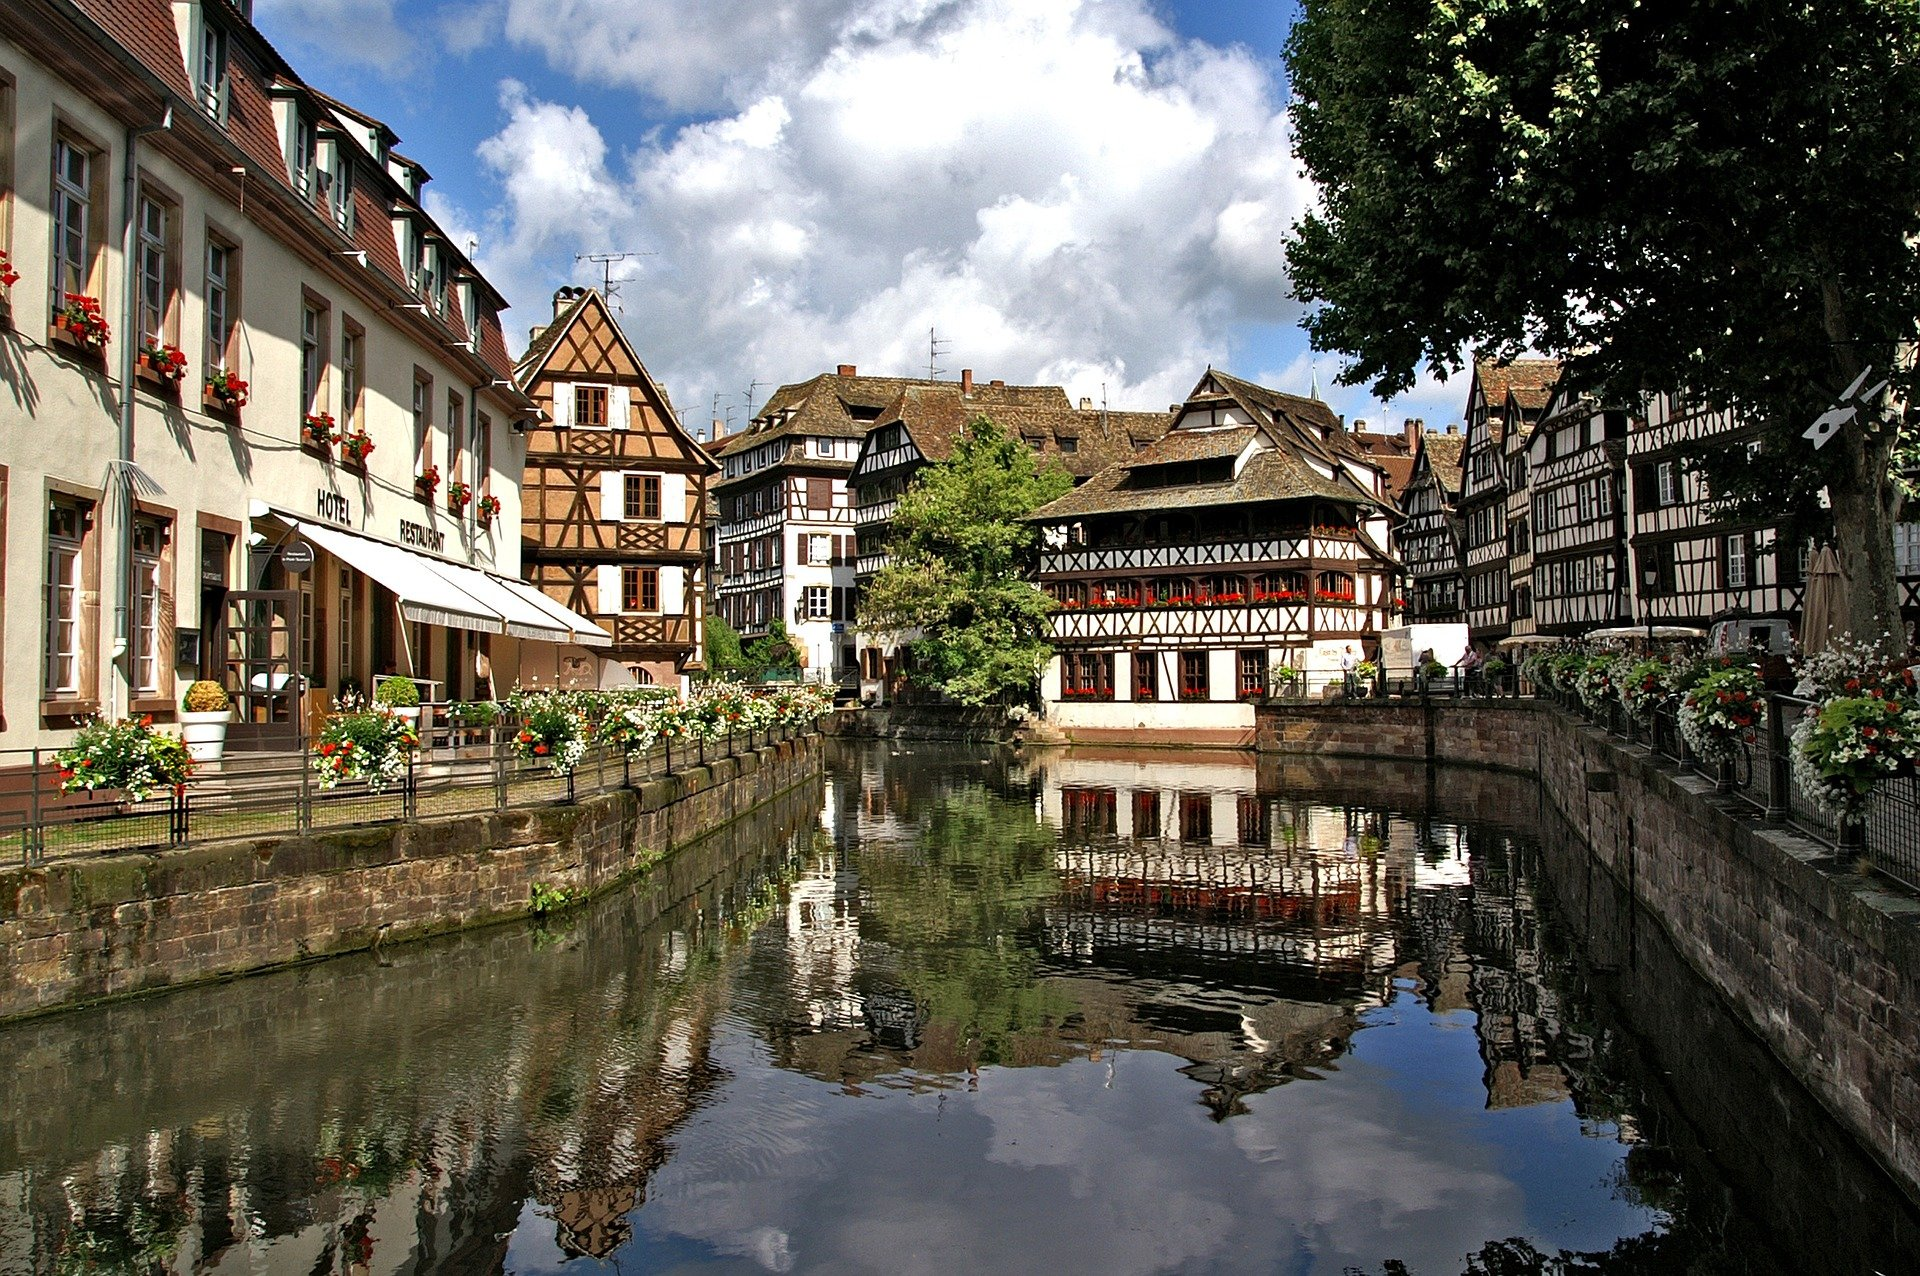 Subtropisch Zwembad Elzas Things To Do Grand Est Visit Alsace The Originals Hotels